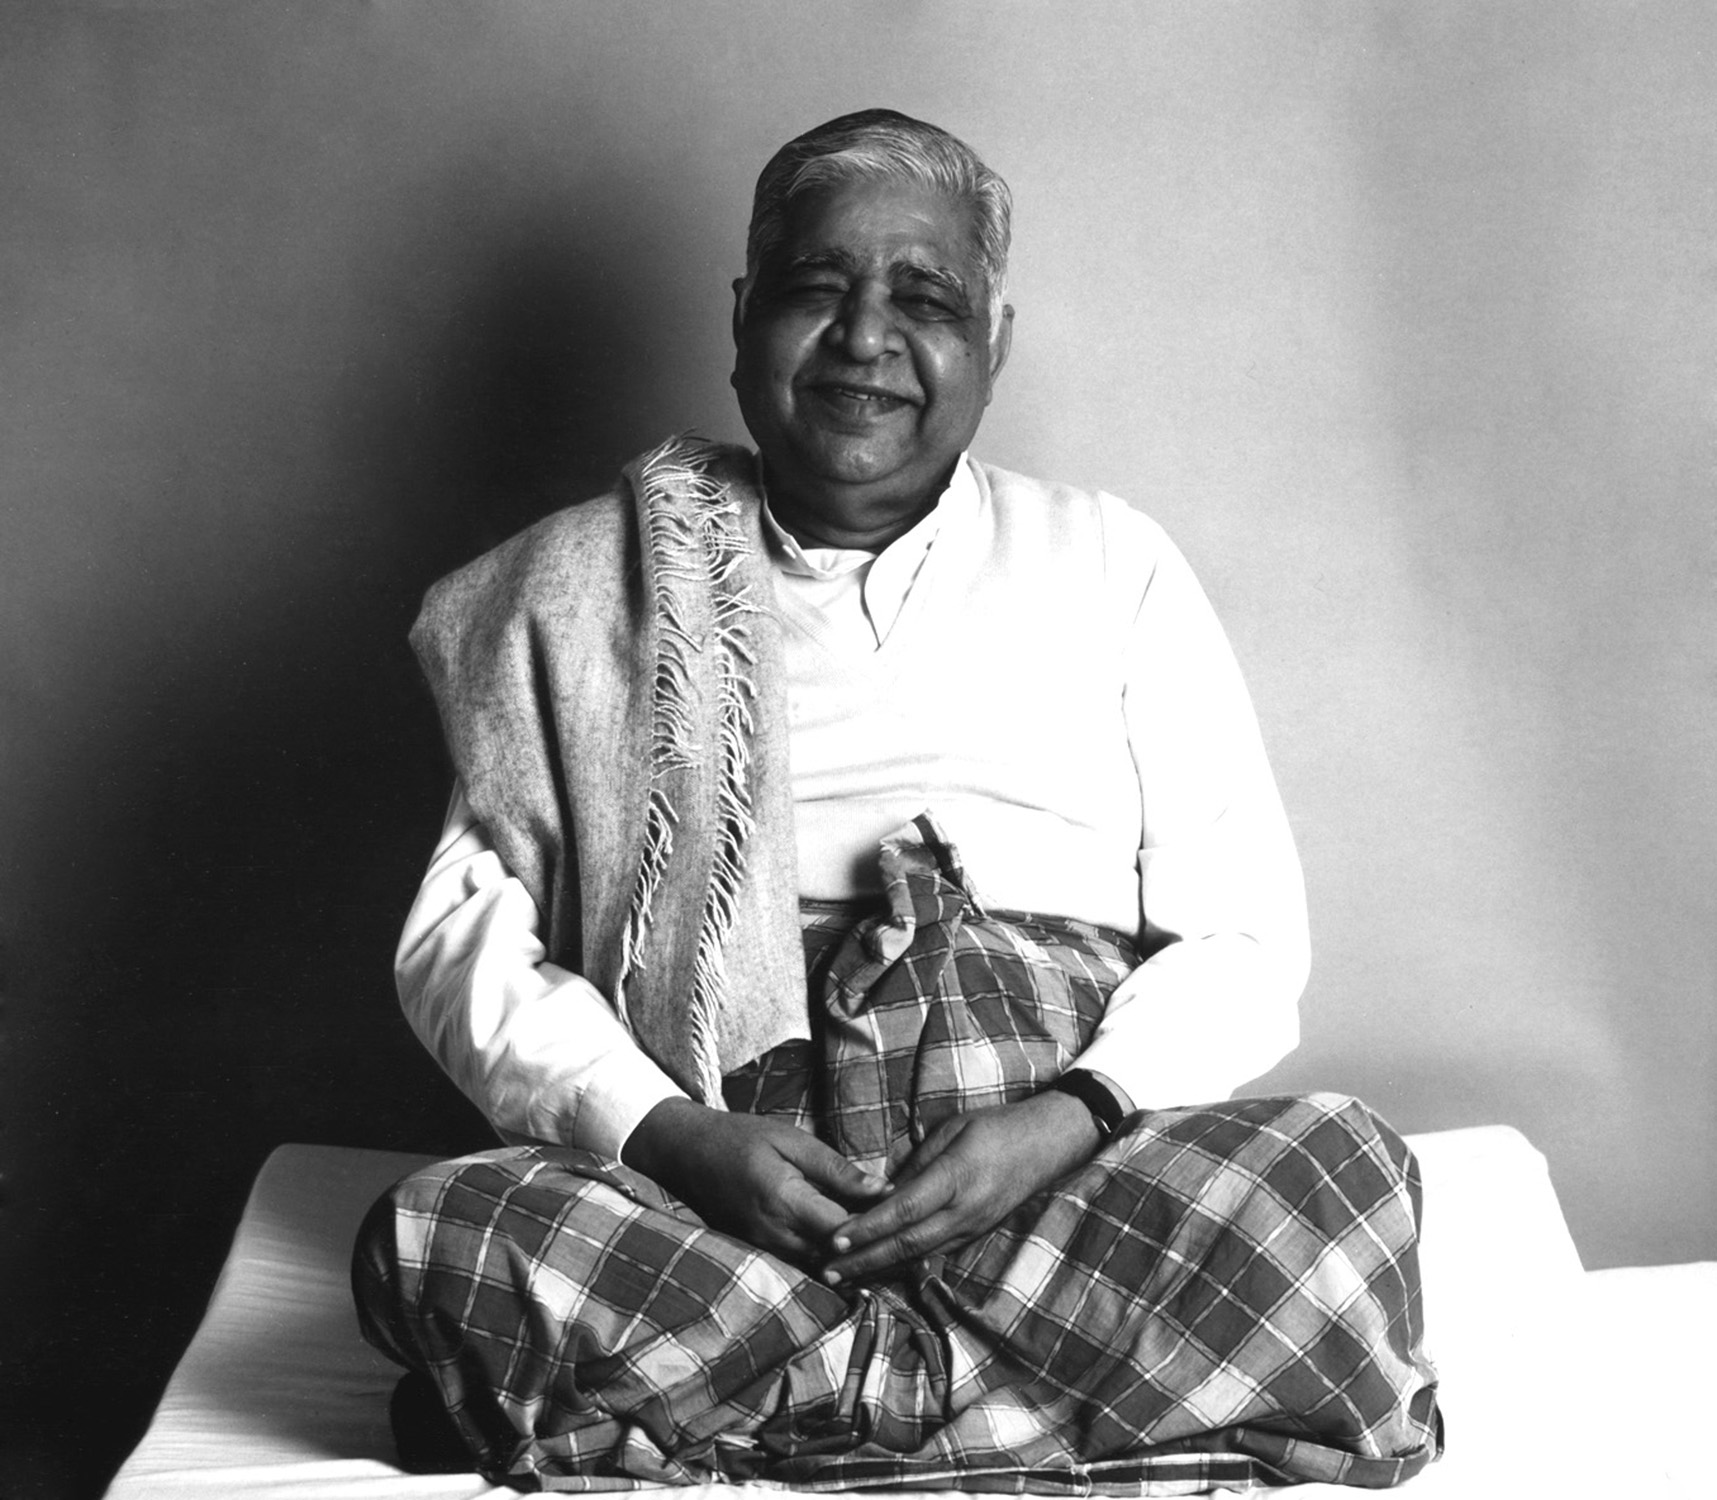 The late S.N. Goenka was a former Burmese industrialist who was introduced to the technique of Vipassana while seeking out a cure for his persistent and severe migraines. His success with the technique under his teacher Sayagyi U Ba Khin led him to become the one who essentially brought the technique, allegedly Buddha's original technique preserved for centuries in Burma through a lineage of monks, into the mainstream. There are currently close to 200 Vipassana Centres around the globe.